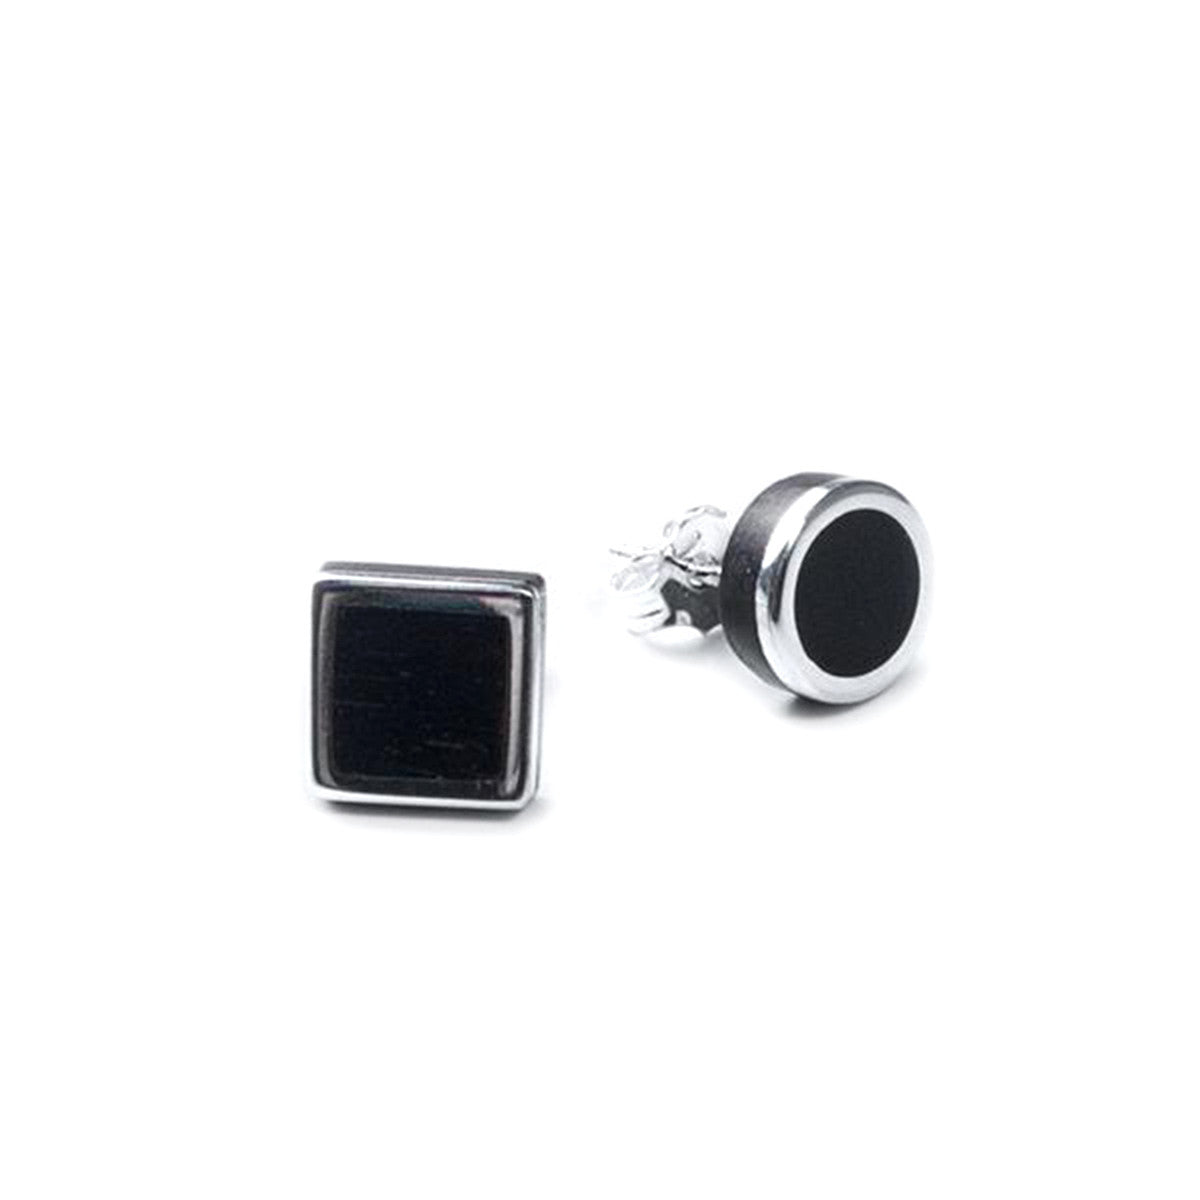 Eszter Zamori: Ebony Silver Square Circle Stud Earrings